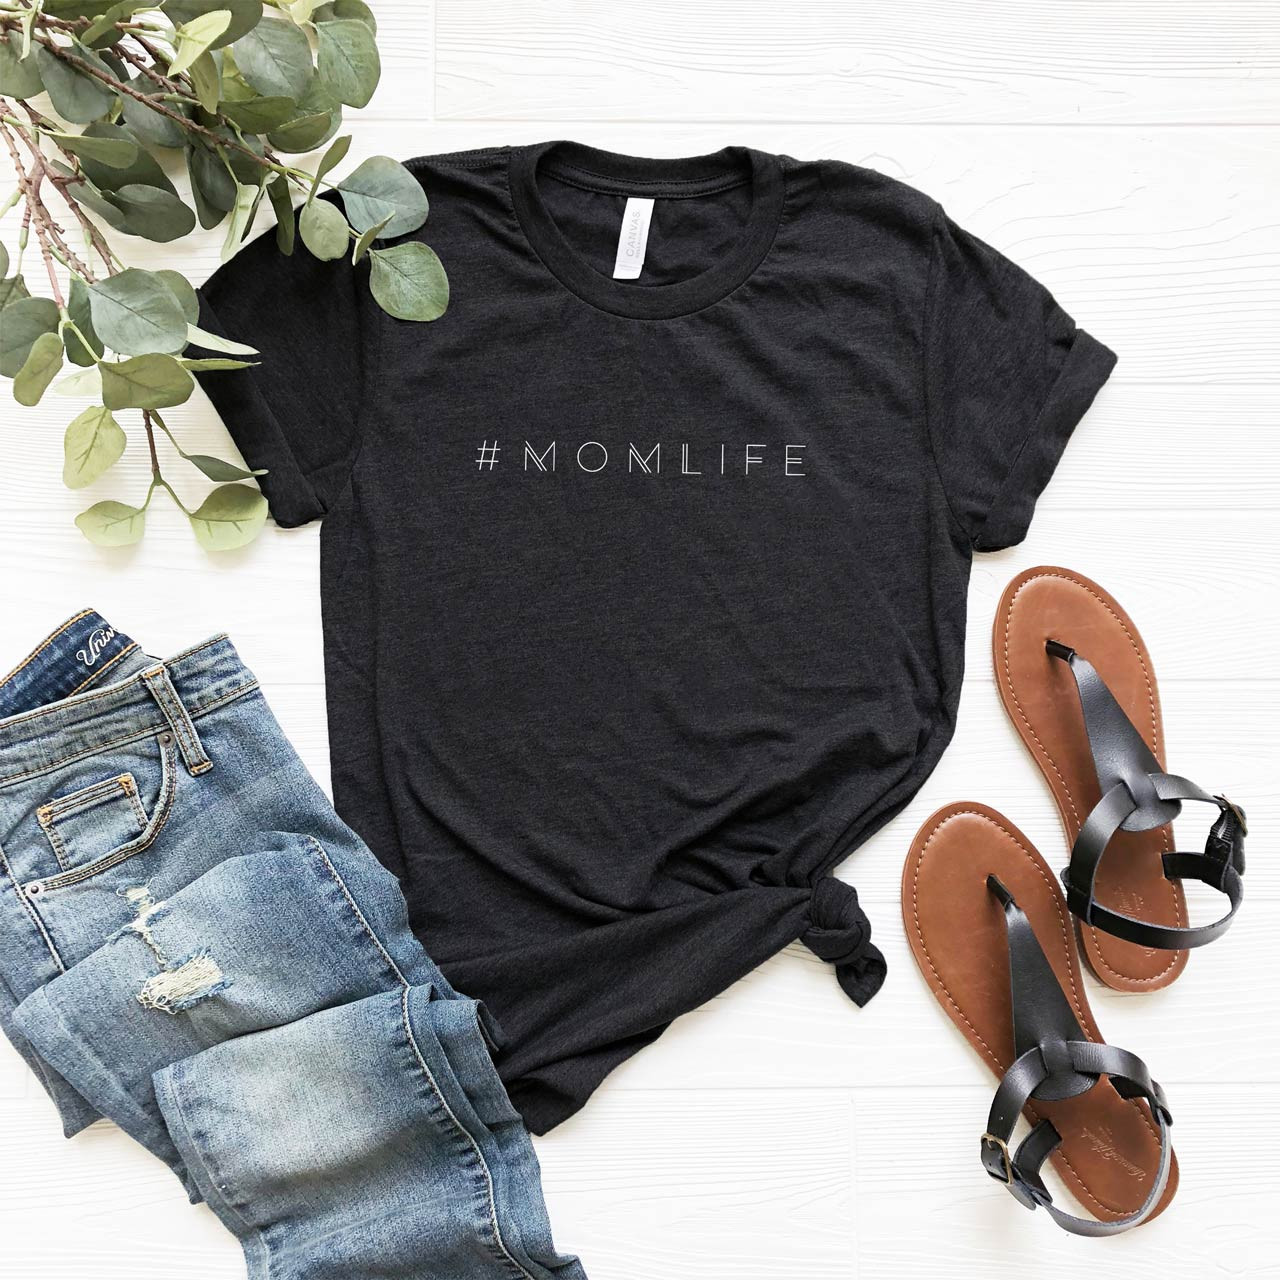 #MOMLIFE Vintage T-Shirt (White on Charcoal Black) from The Printed Home